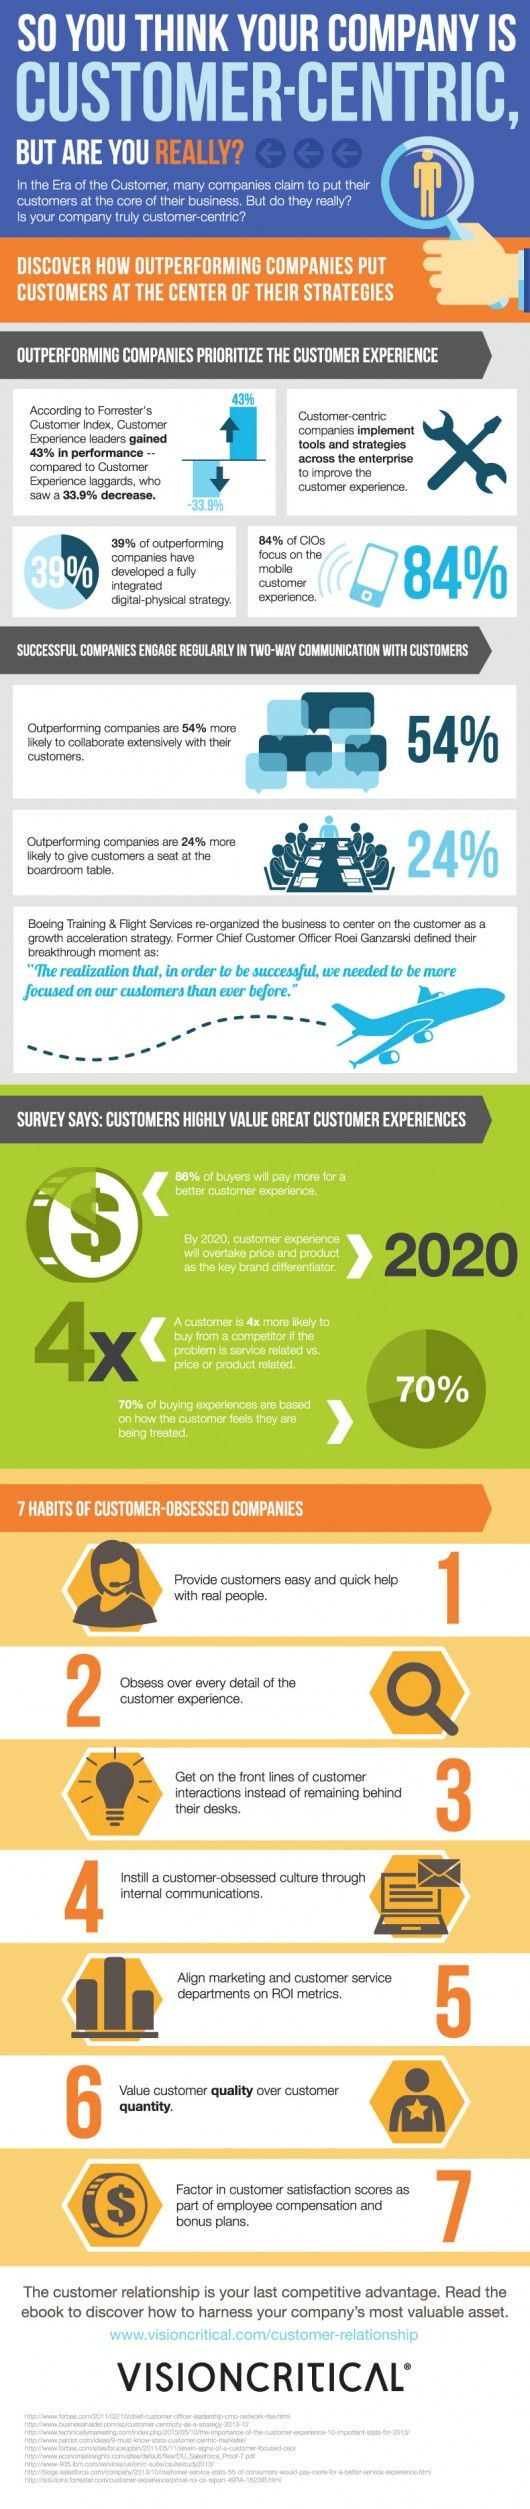 customer-centric-infographic